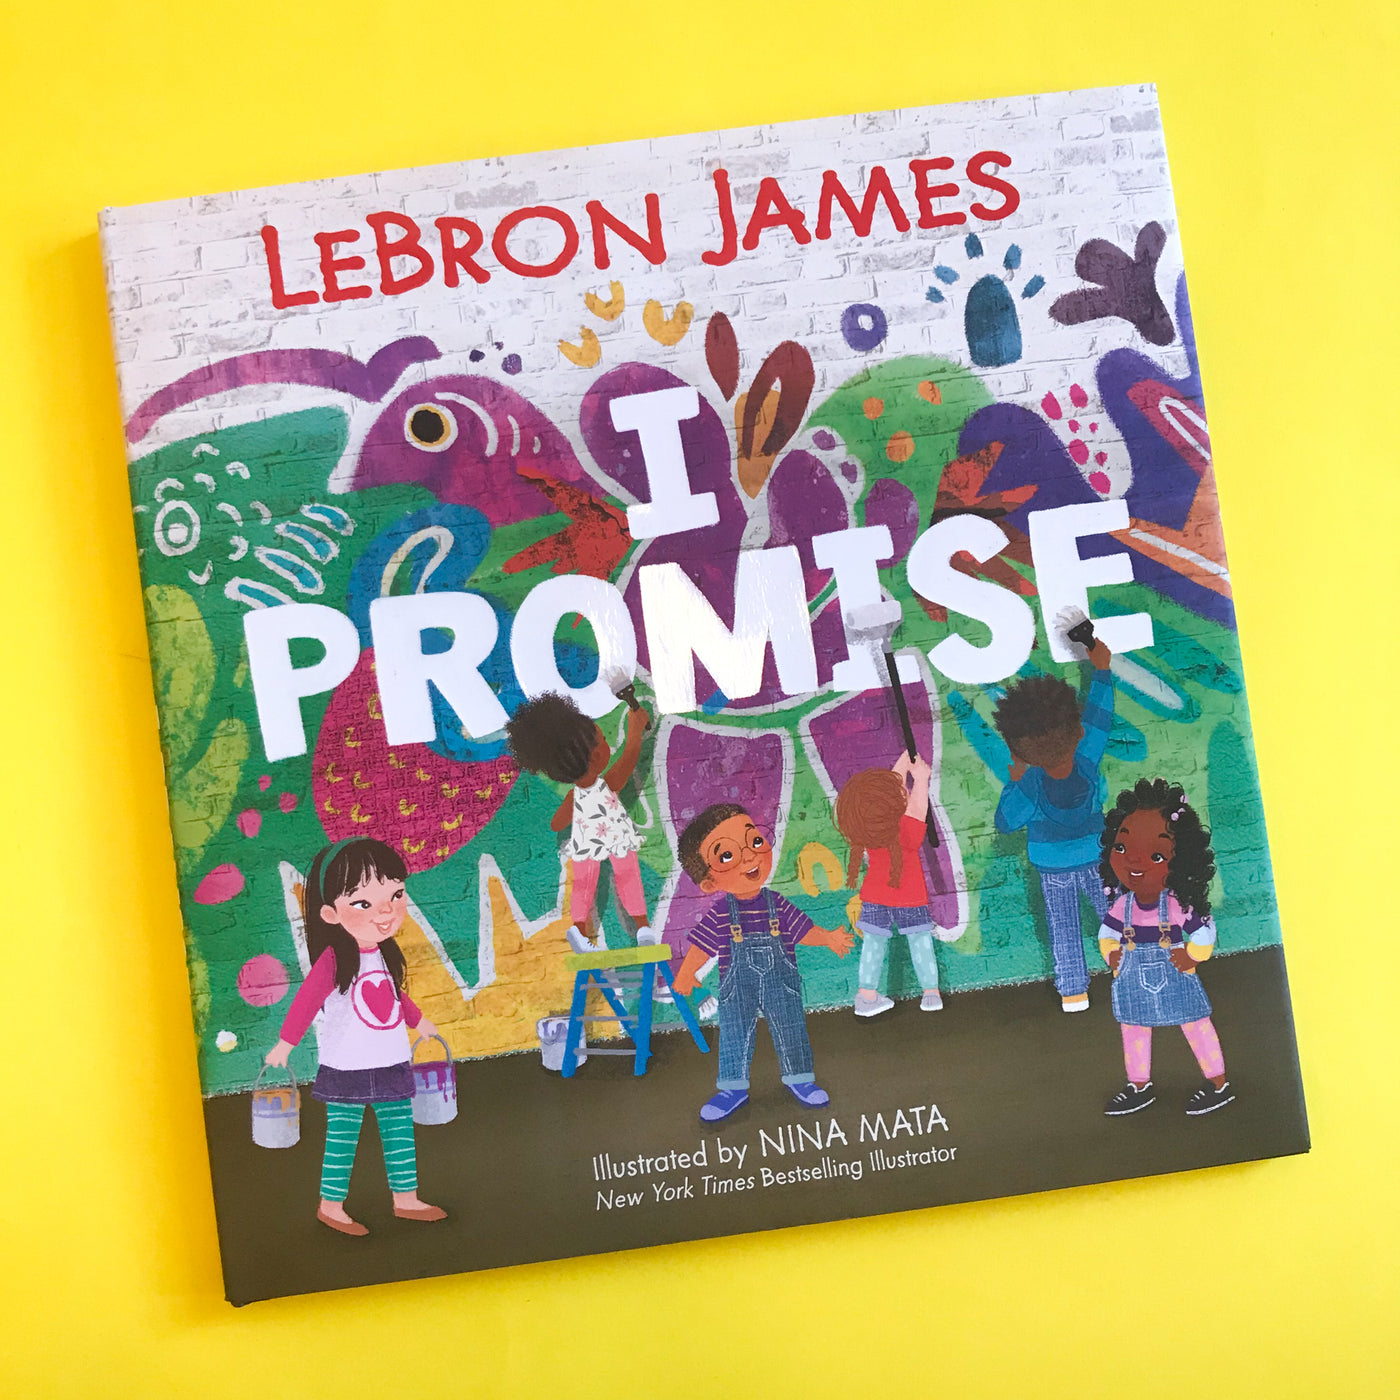 I Promise by LeBron James and Nina Mata